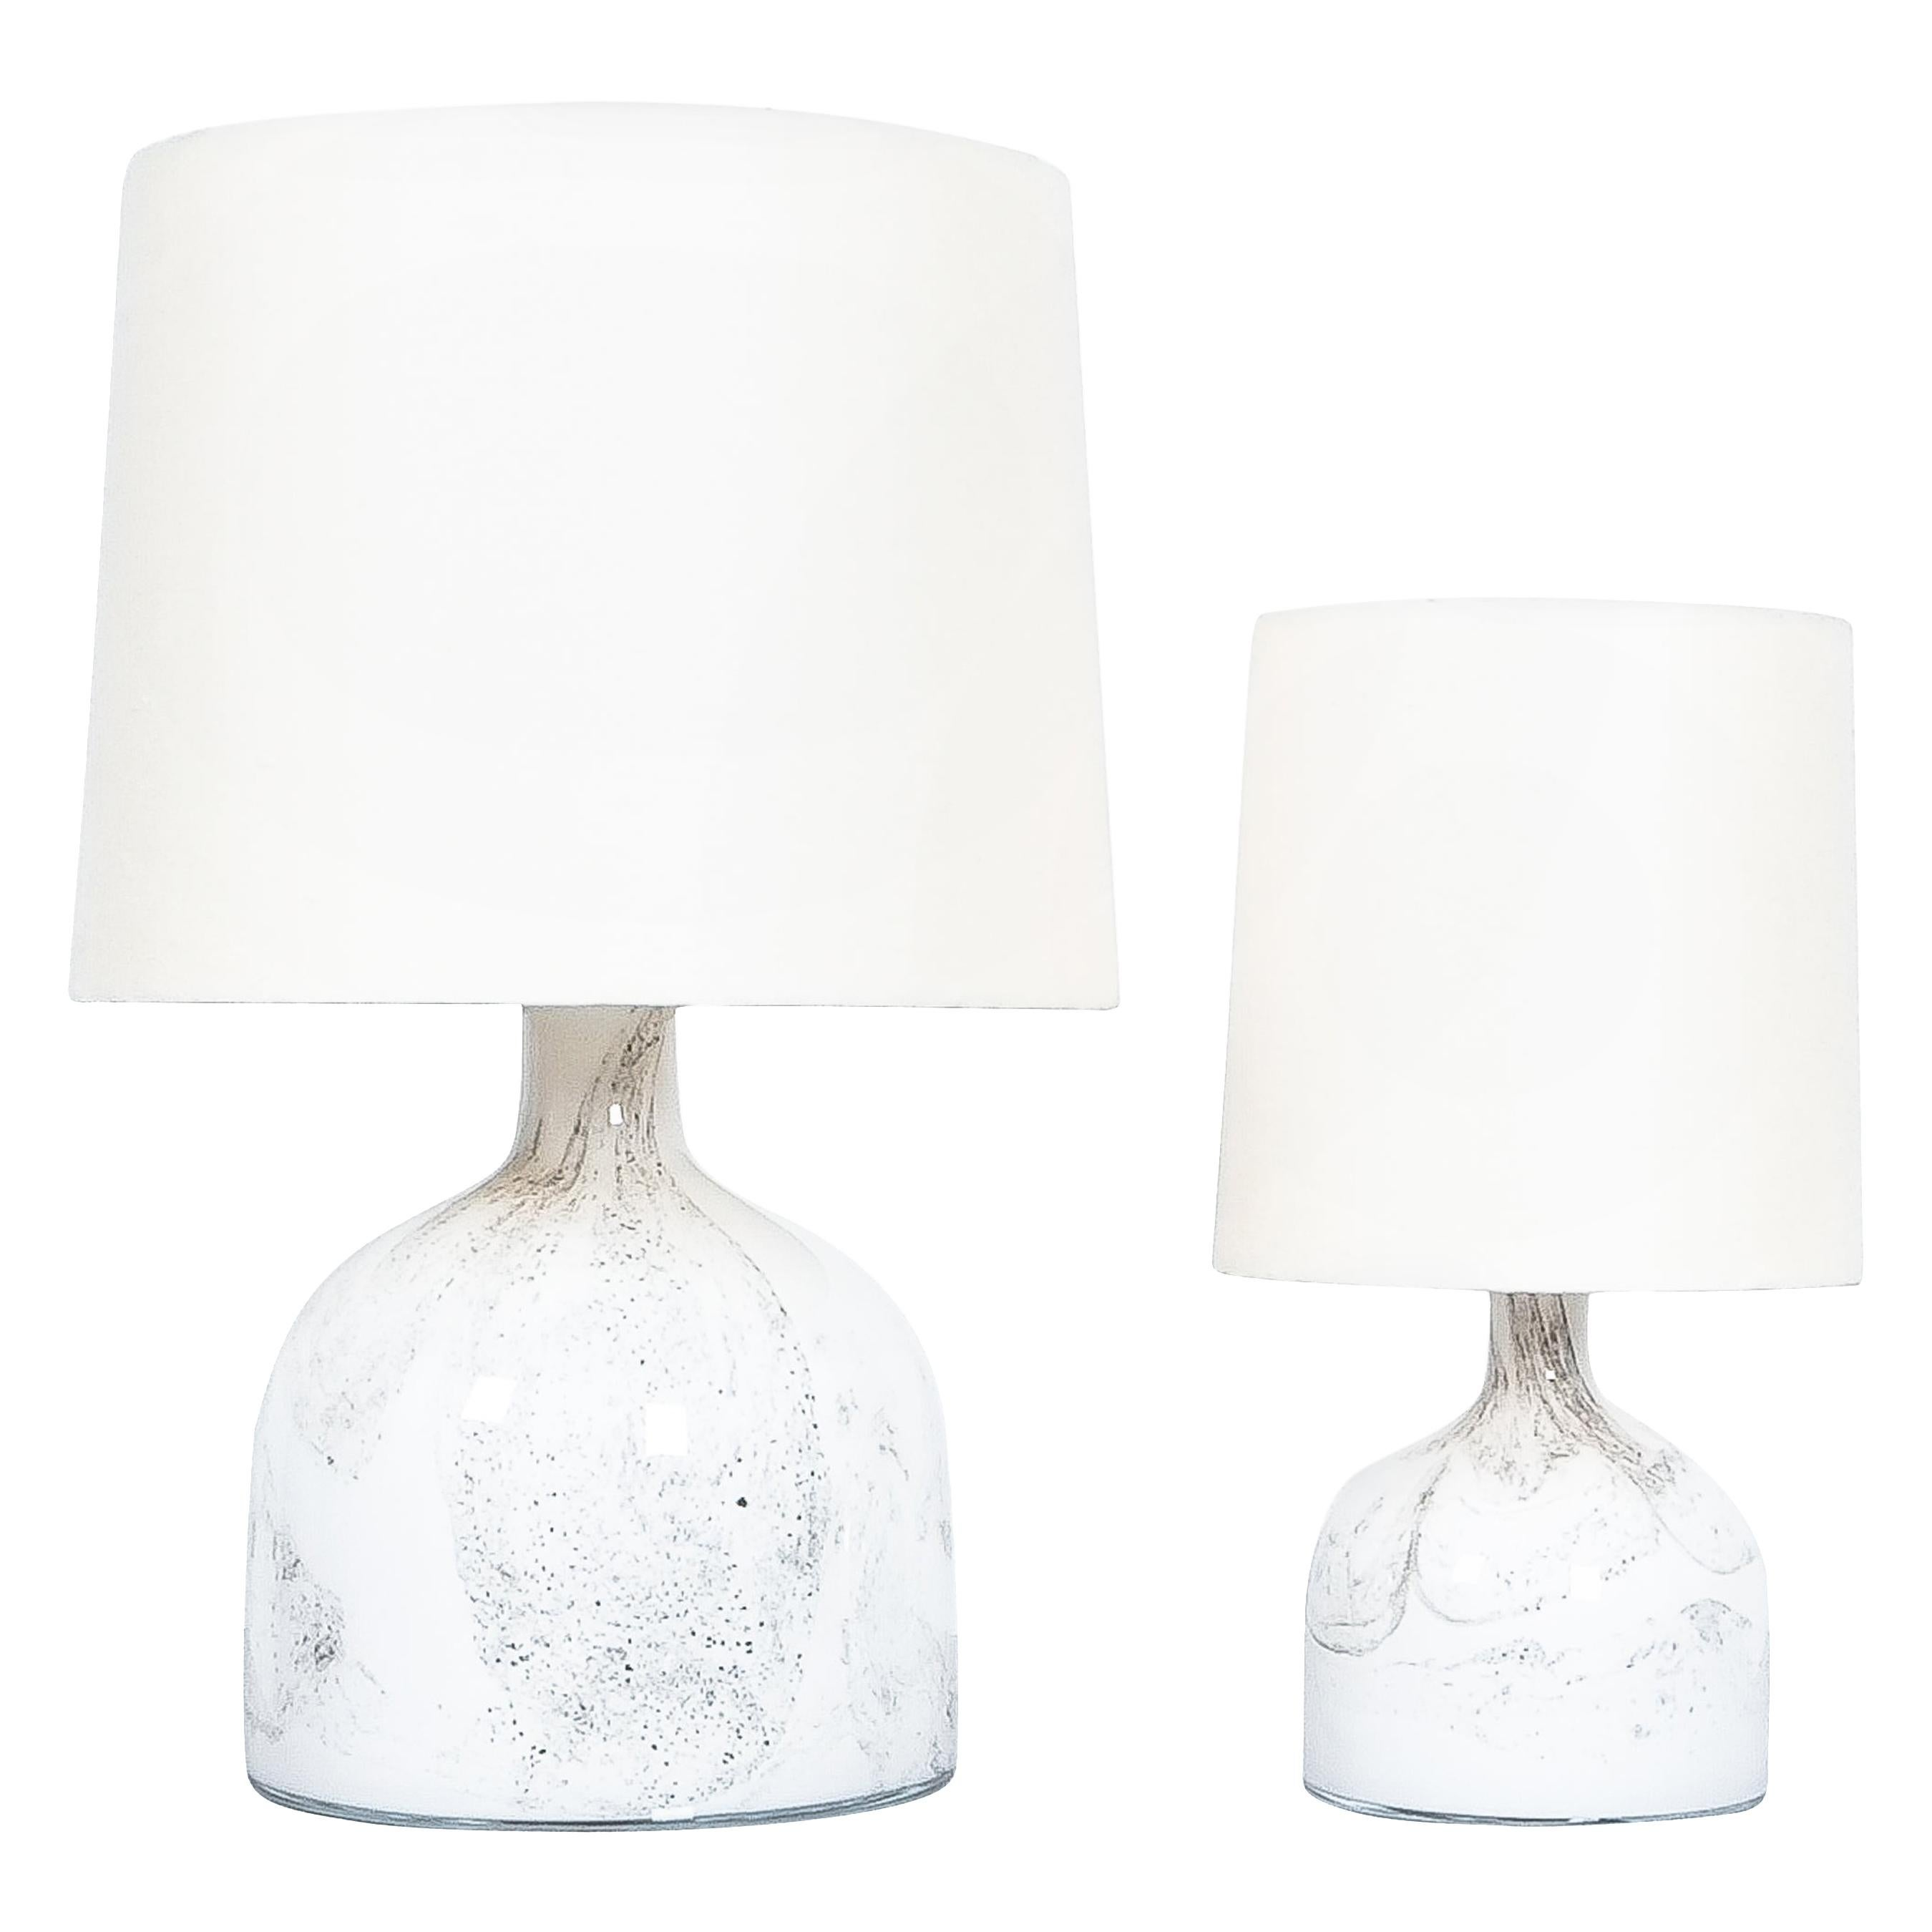 Holmegaard Table Lamps Glass by Michael Bang Denmark, circa 1980